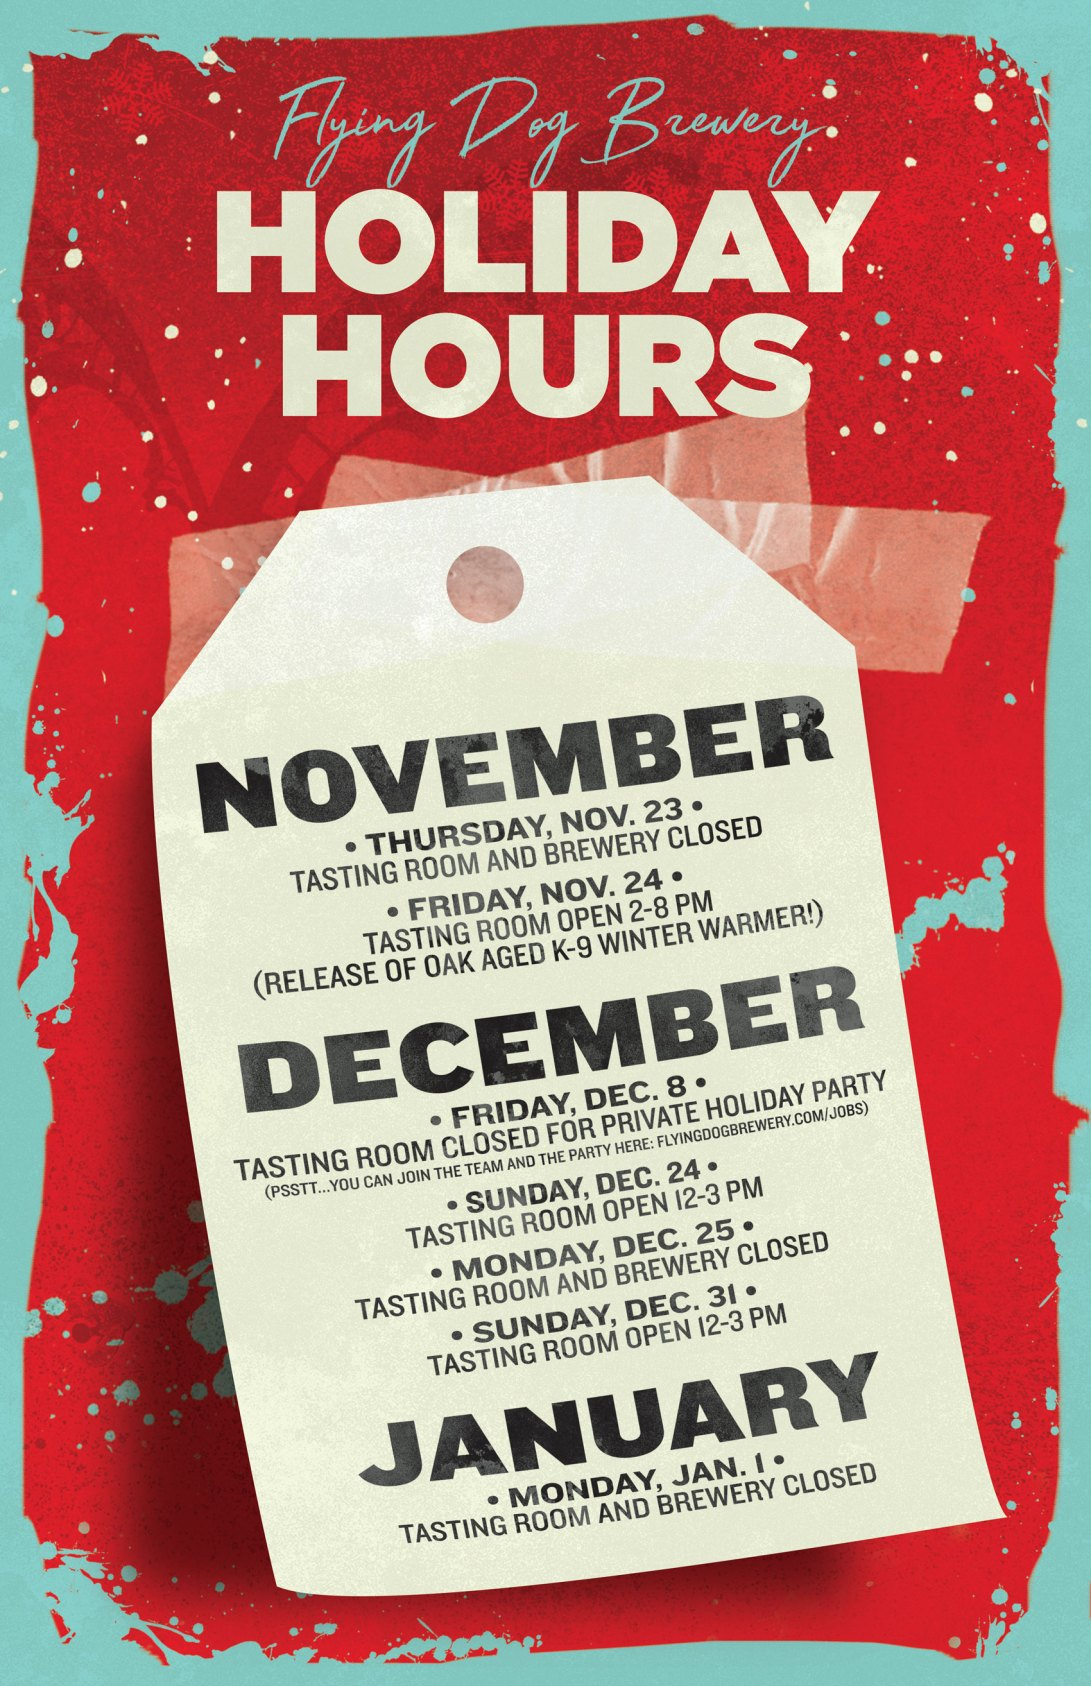 Flying Dog Brewery holiday hours poster